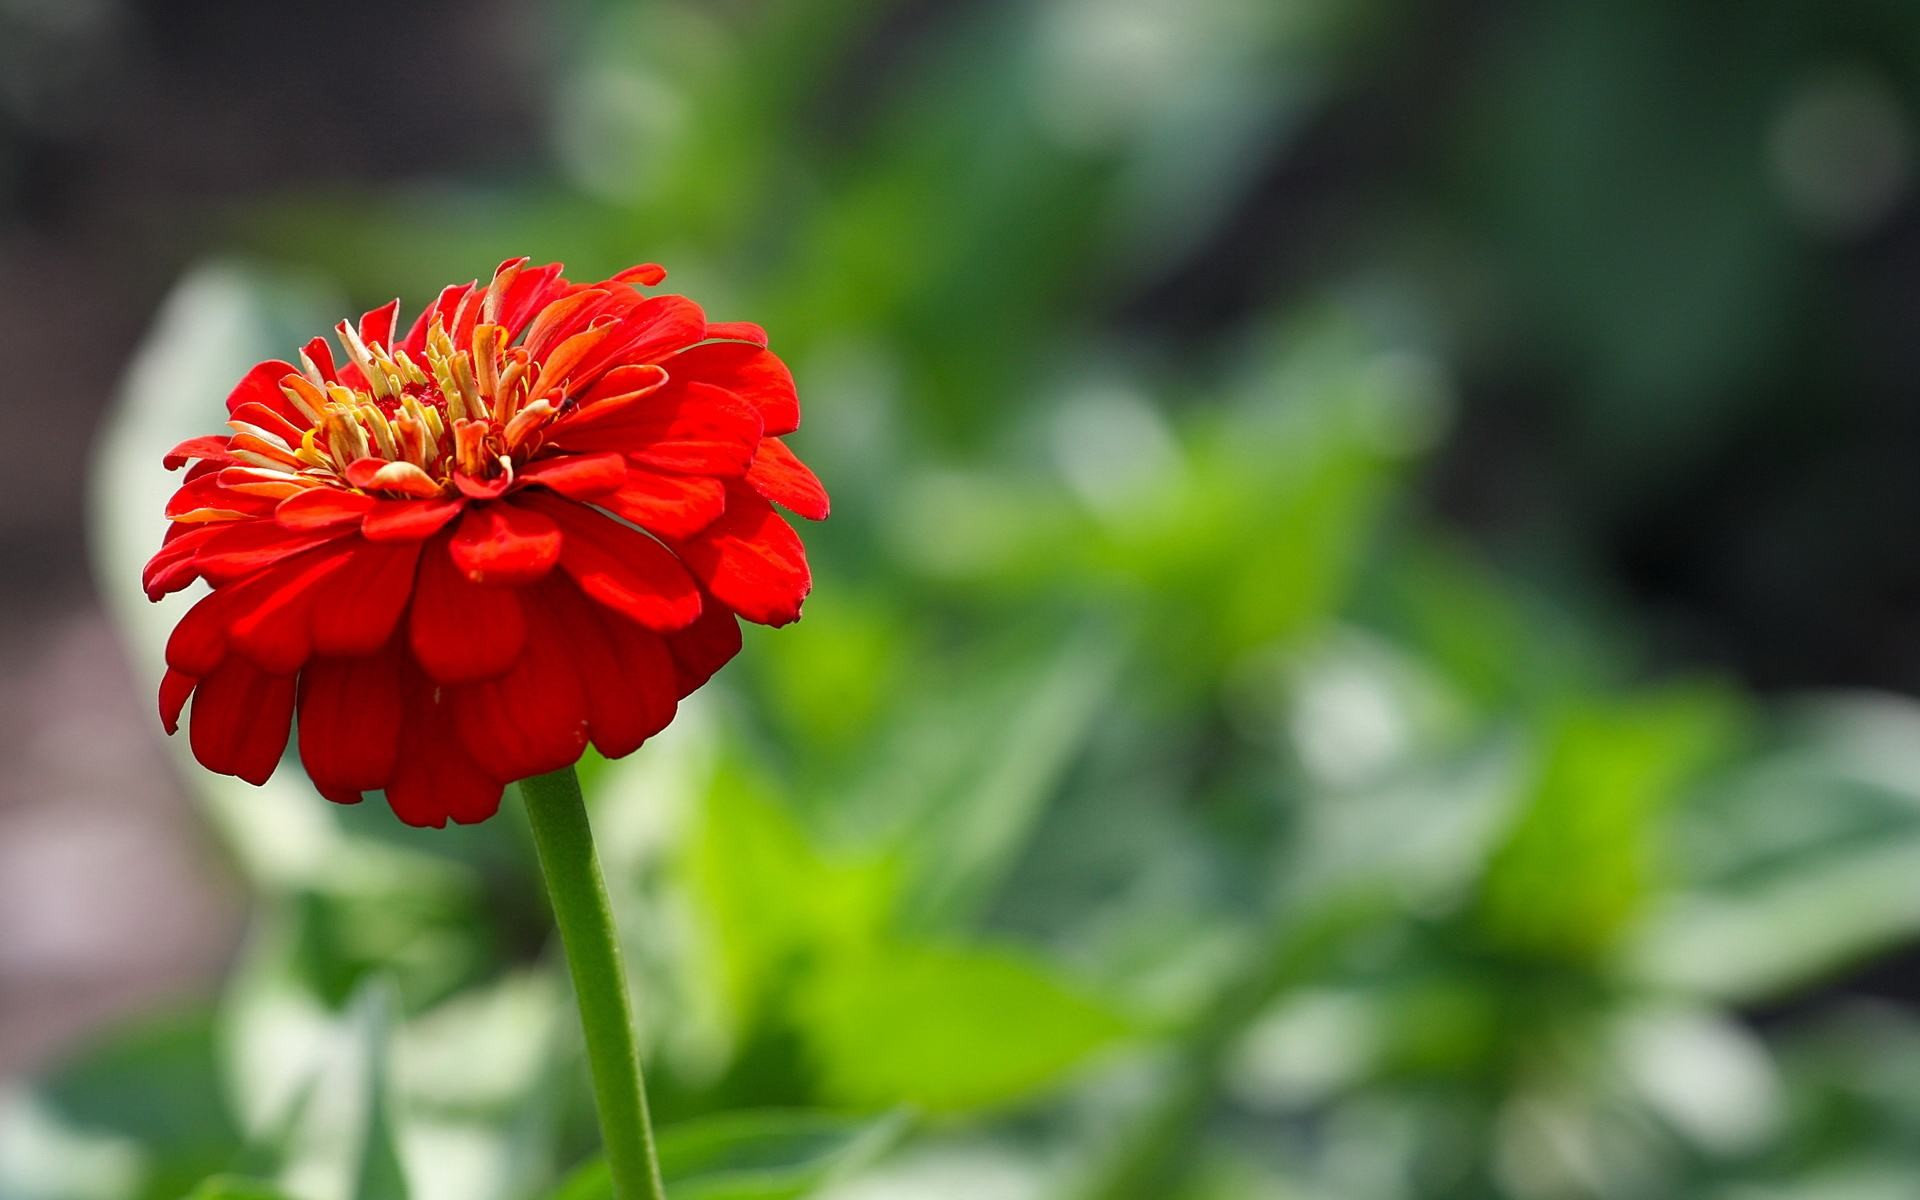 Res: 1920x1200, Summer Red Flowers | 1920 x 1200 | Download | Close